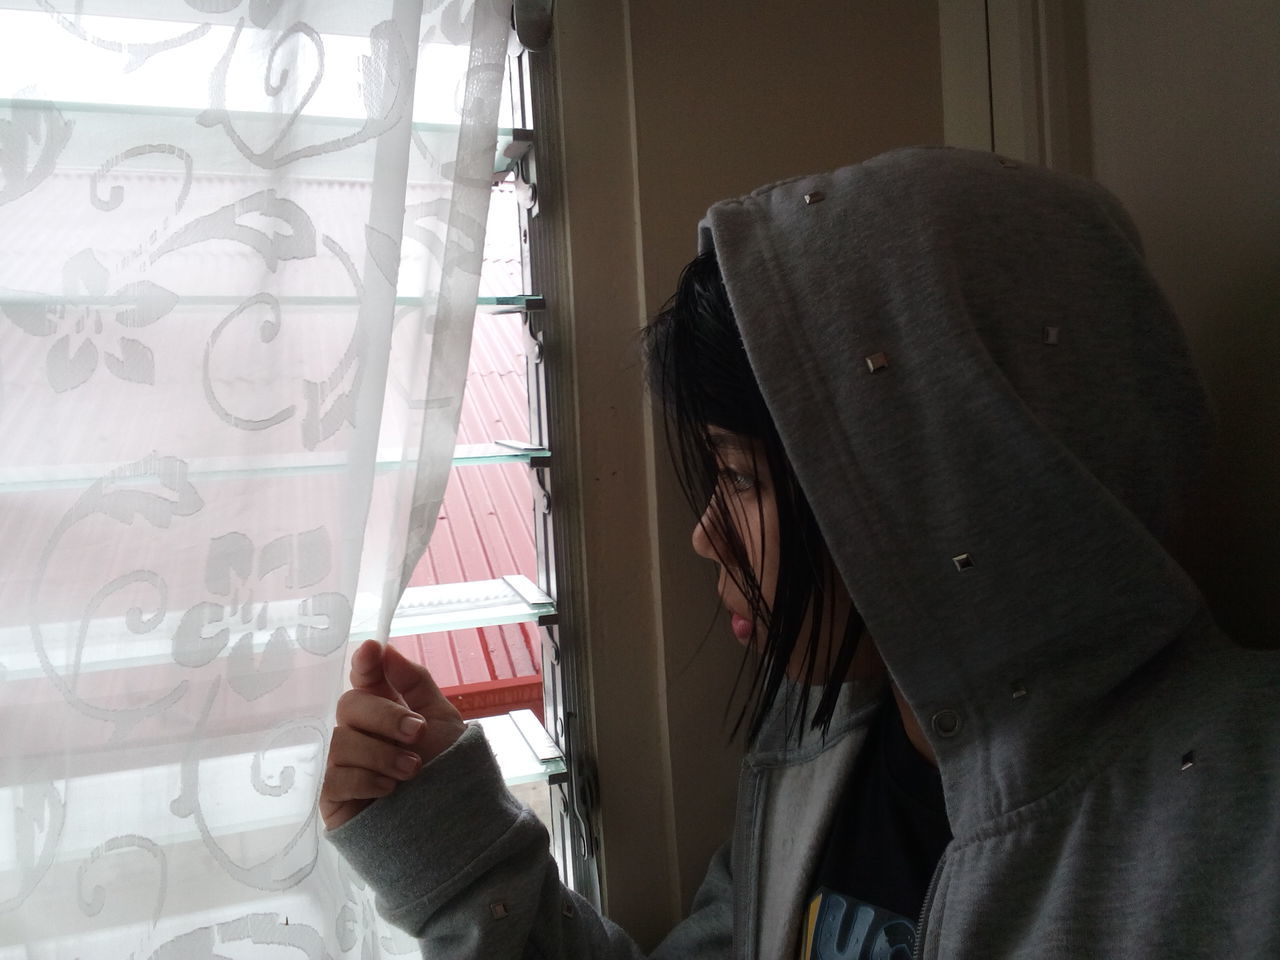 Cold Days One Person Hooded Shirt Human Body Part Adult Young Woman Peeping Hood - Clothing Looking Through Window Rainy Weather EyeEm